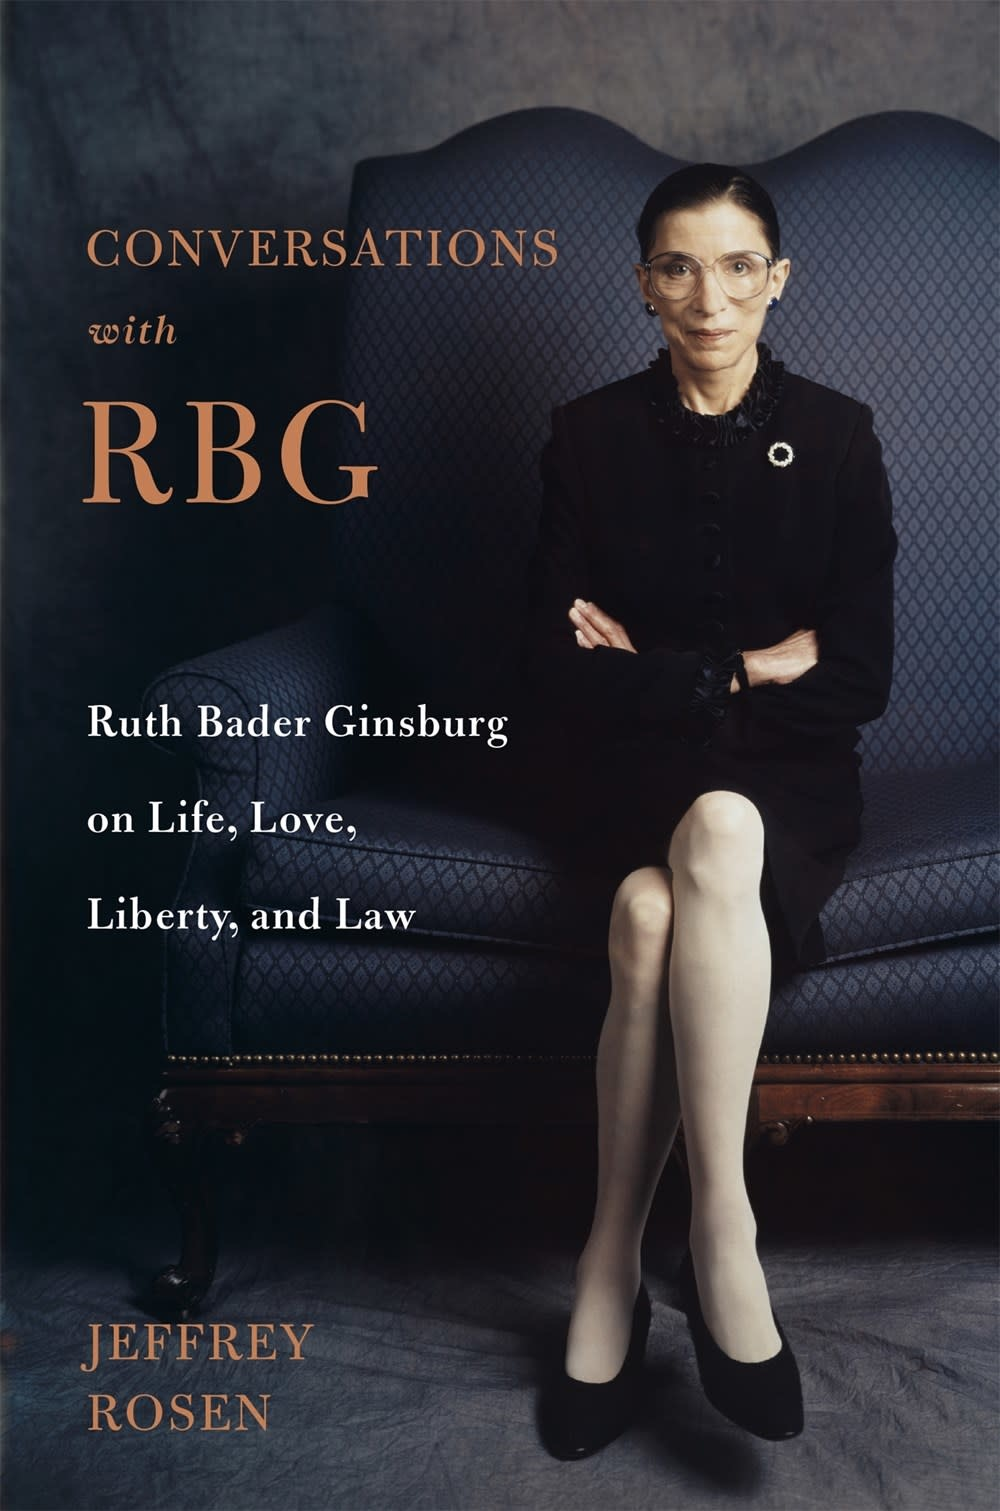 Henry Holt and Co. Conversations with RBG: Ruth Bader Ginsburg on Life, Love, Liberty, and Law